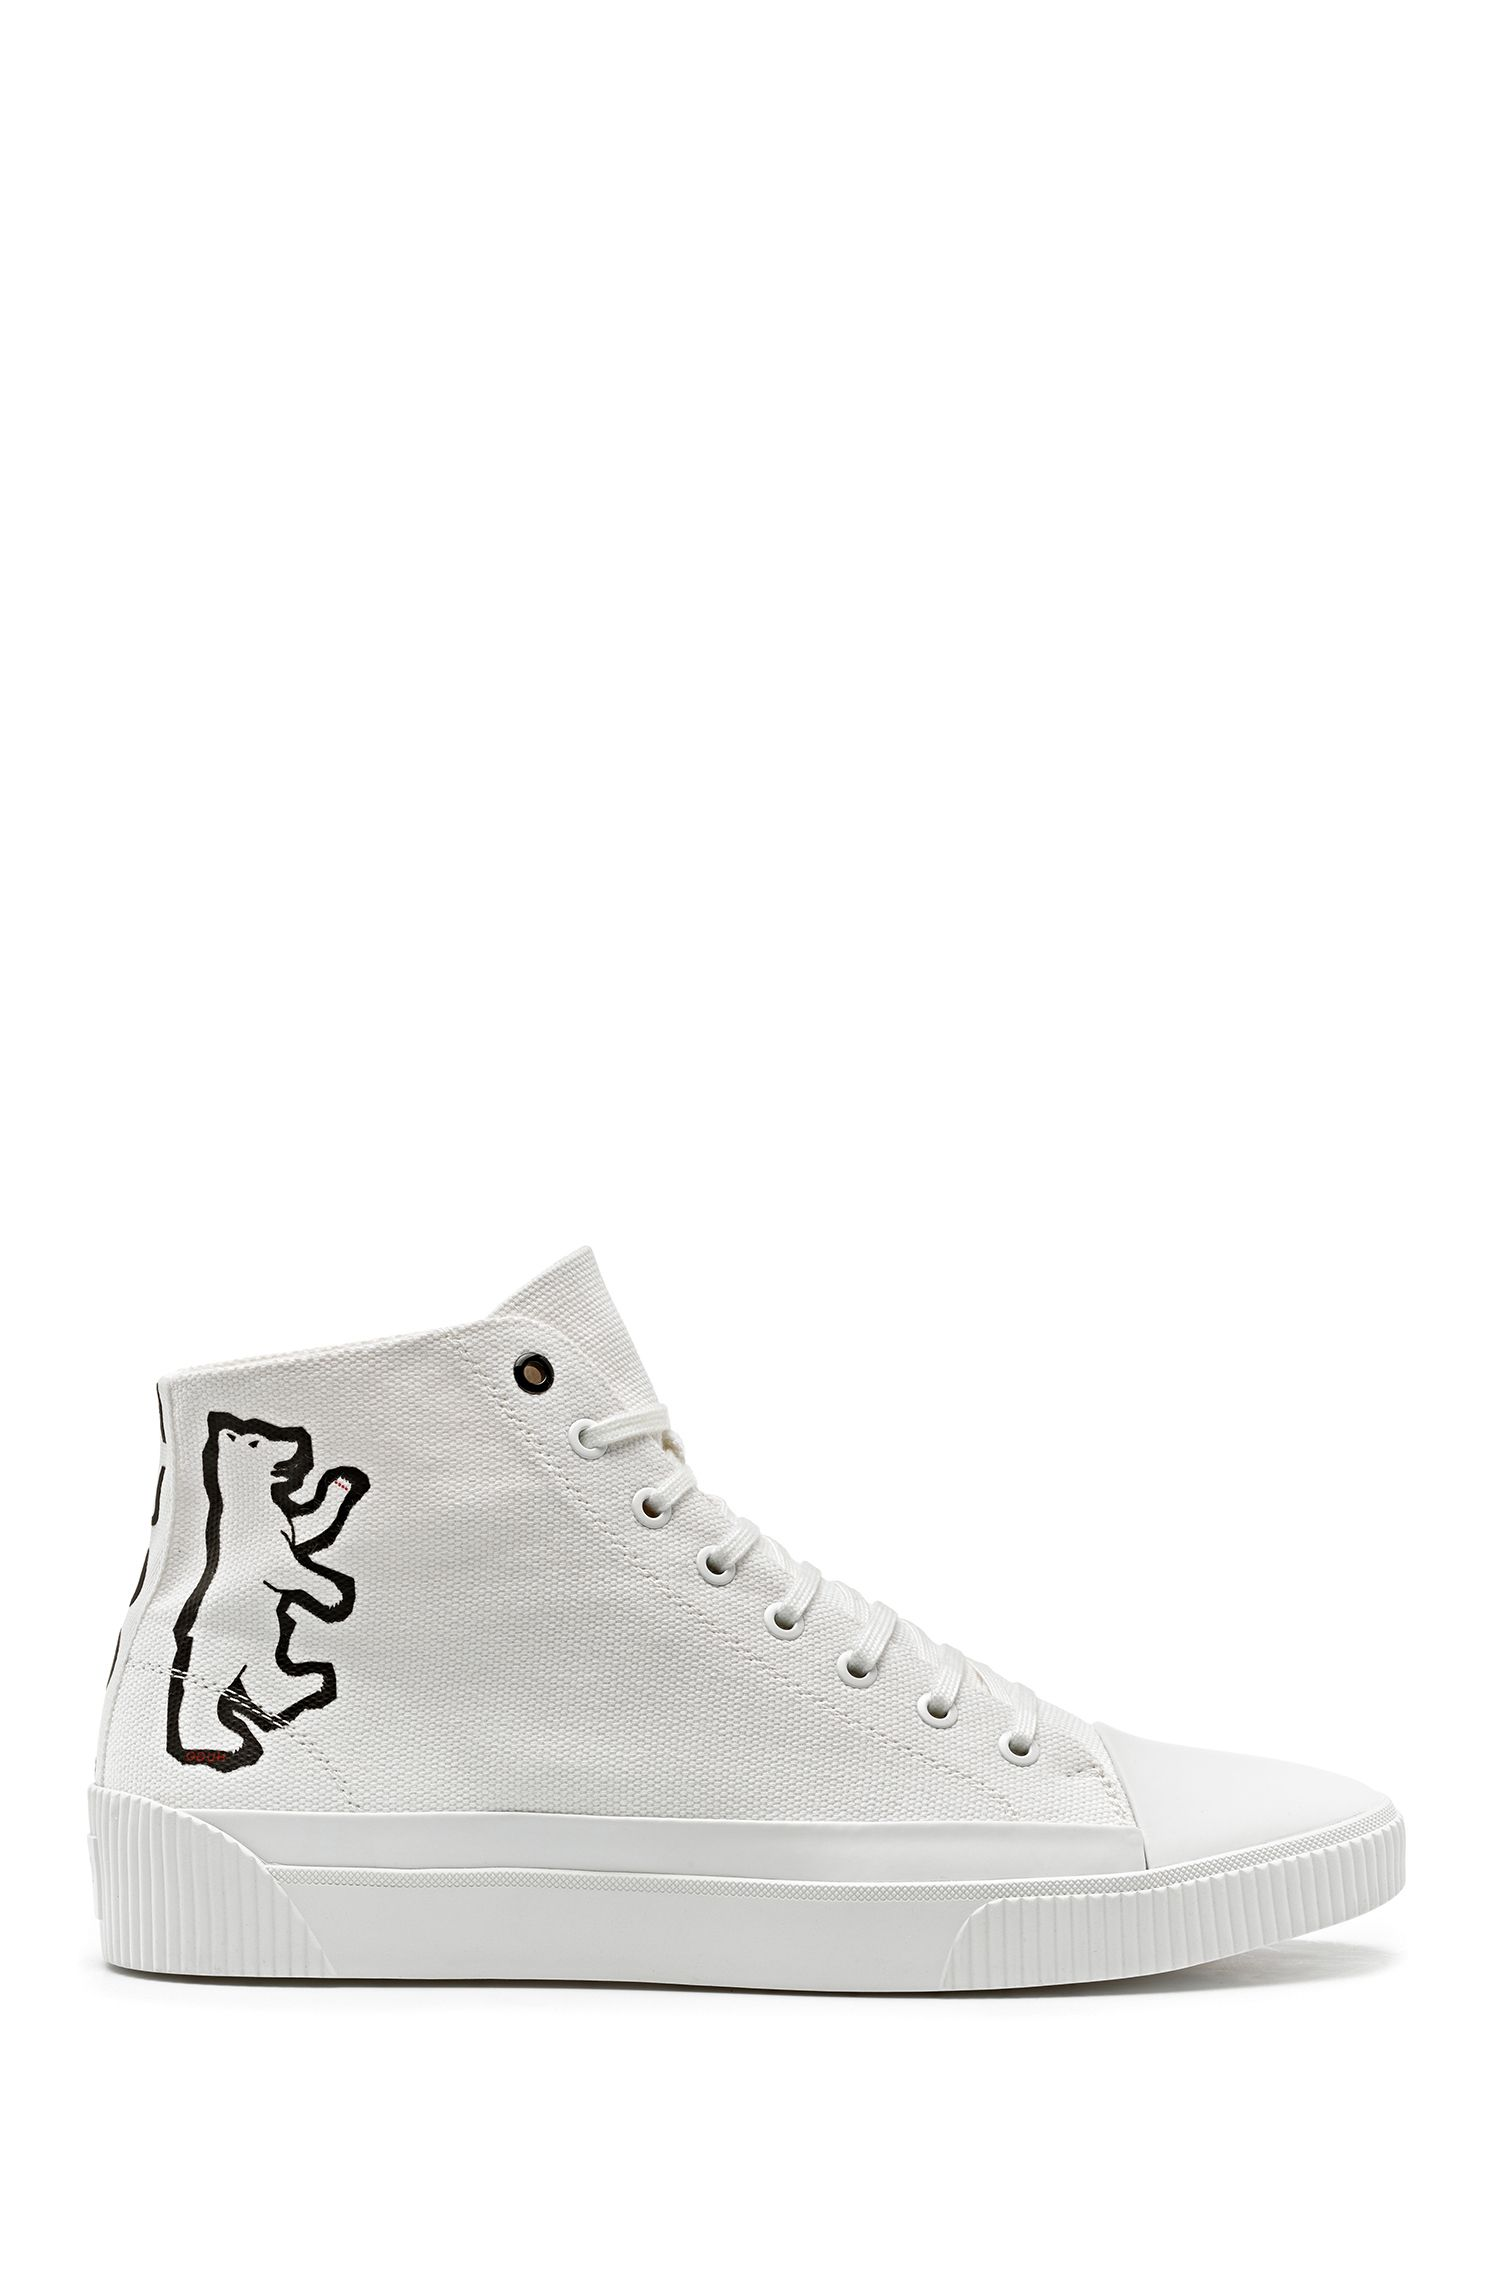 High-top canvas sneakers with bear motif, White